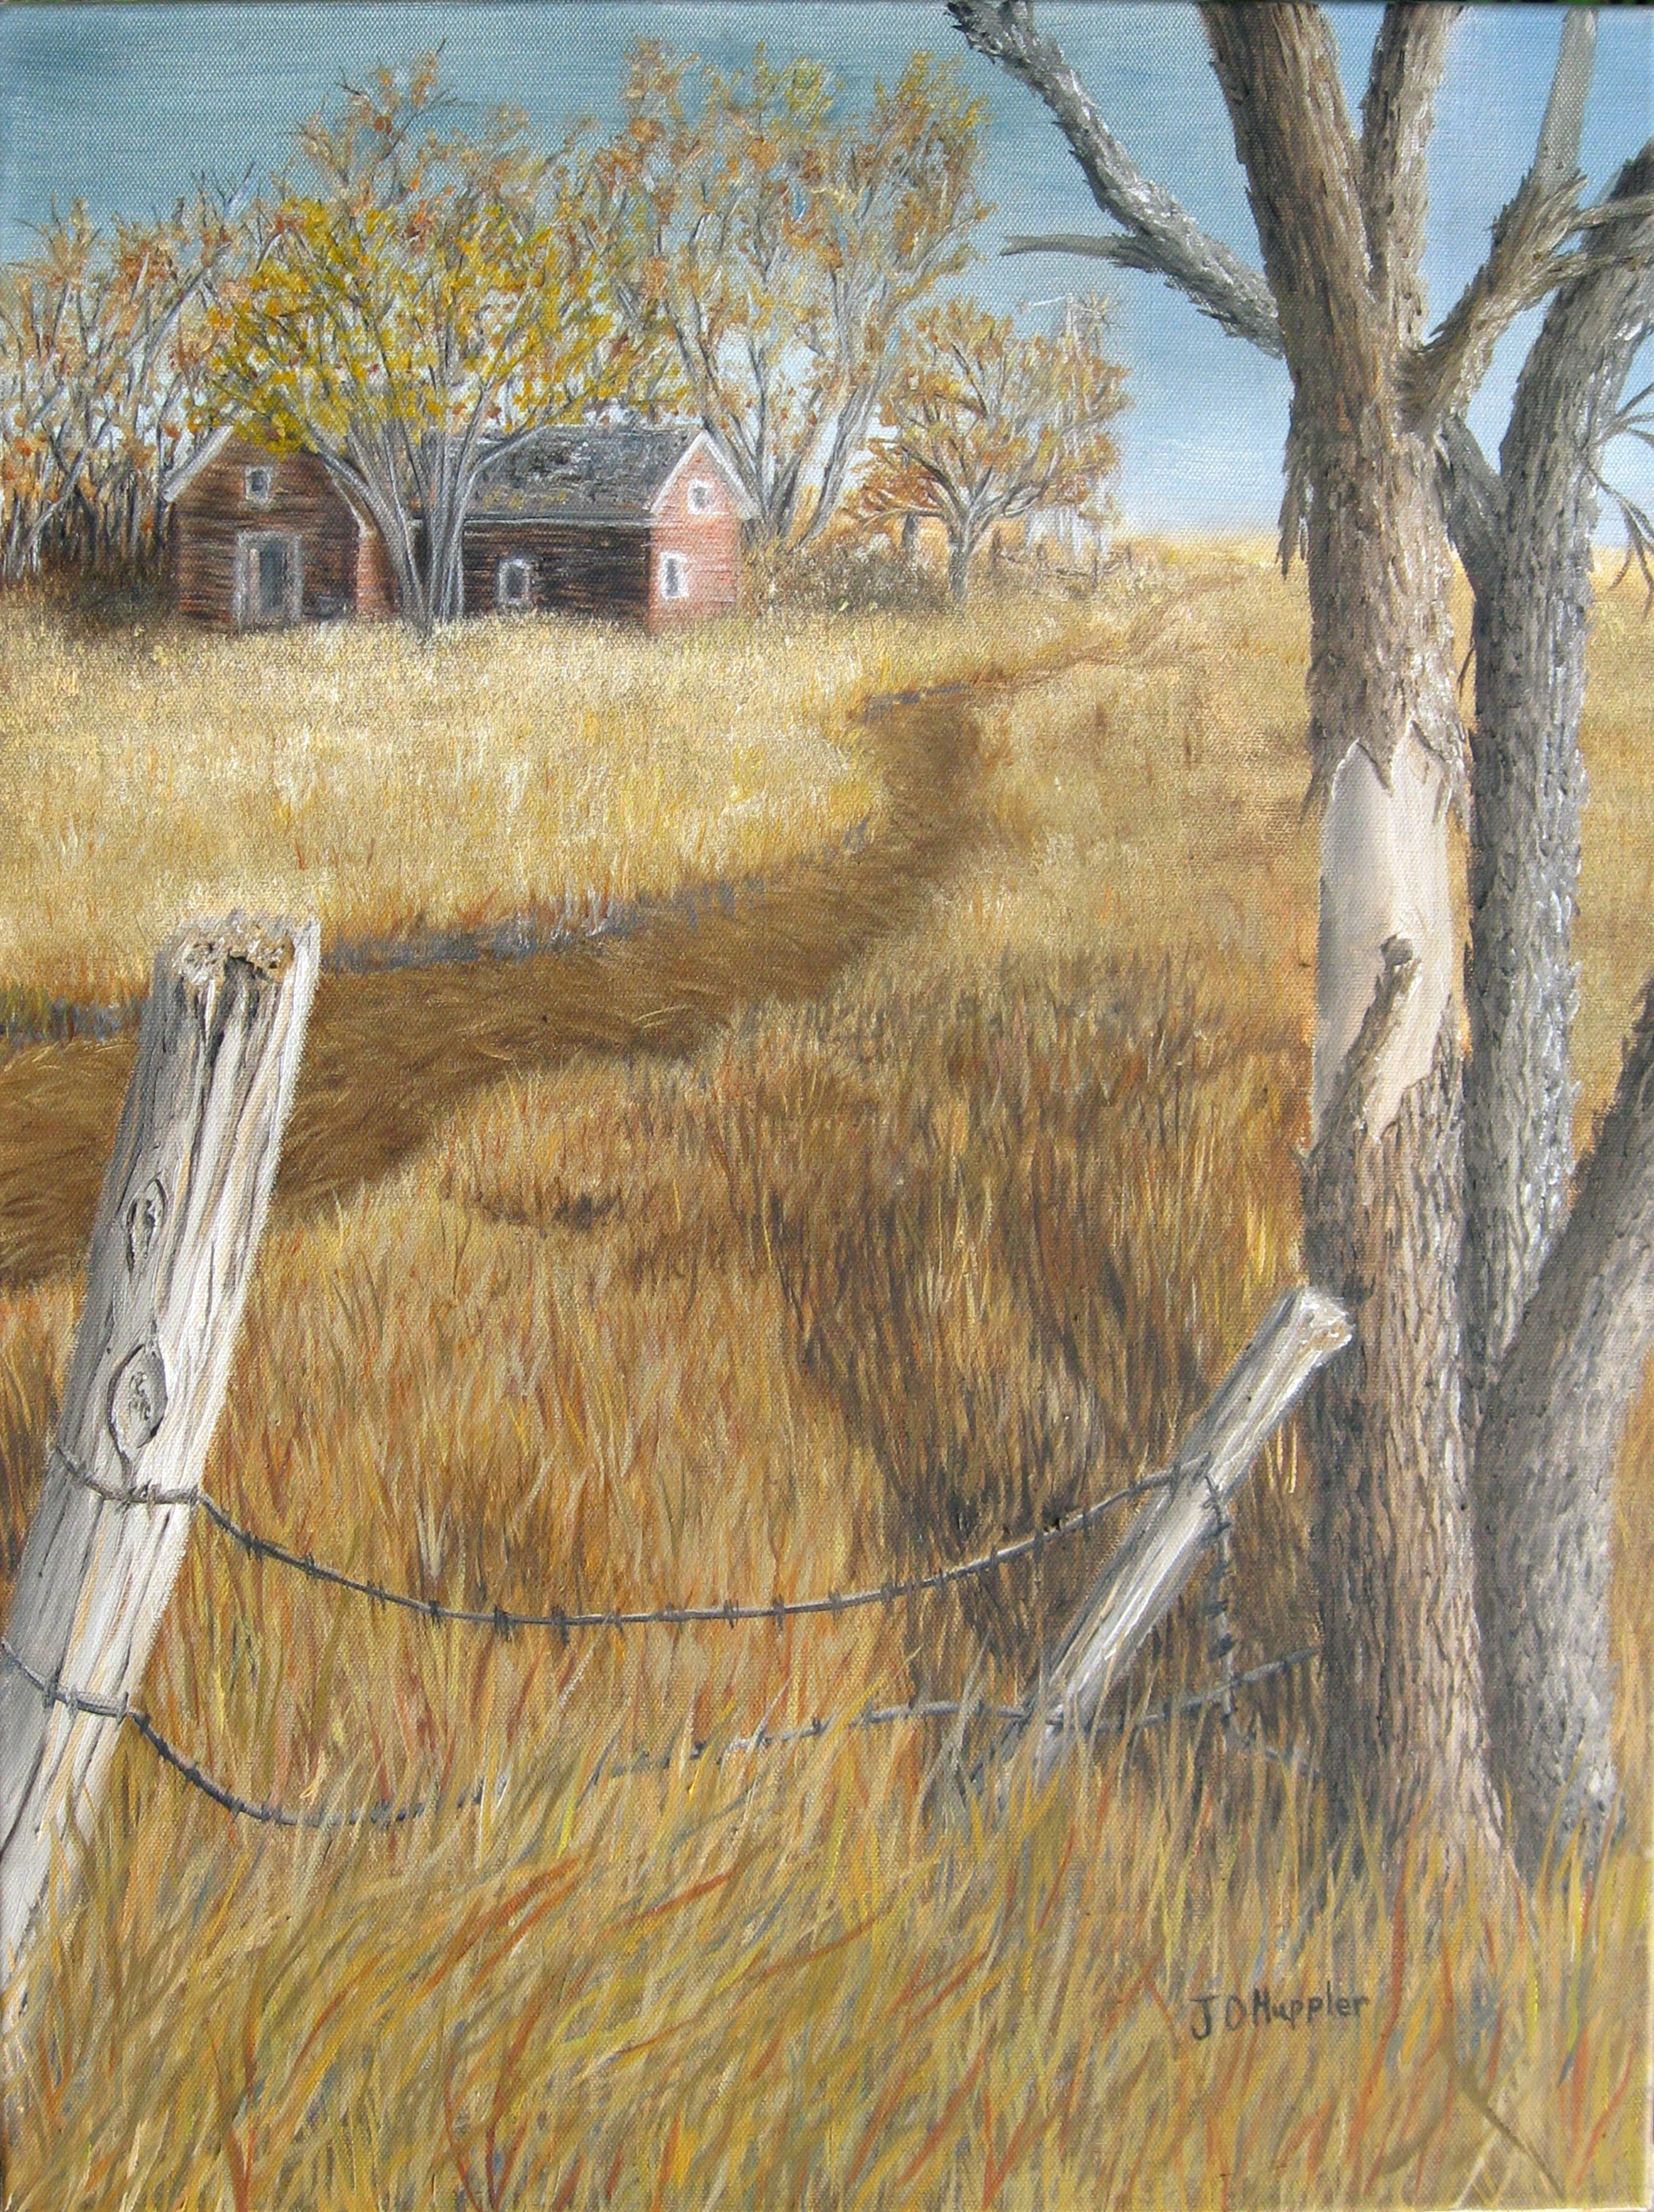 Prairie Paintings J O Huppler